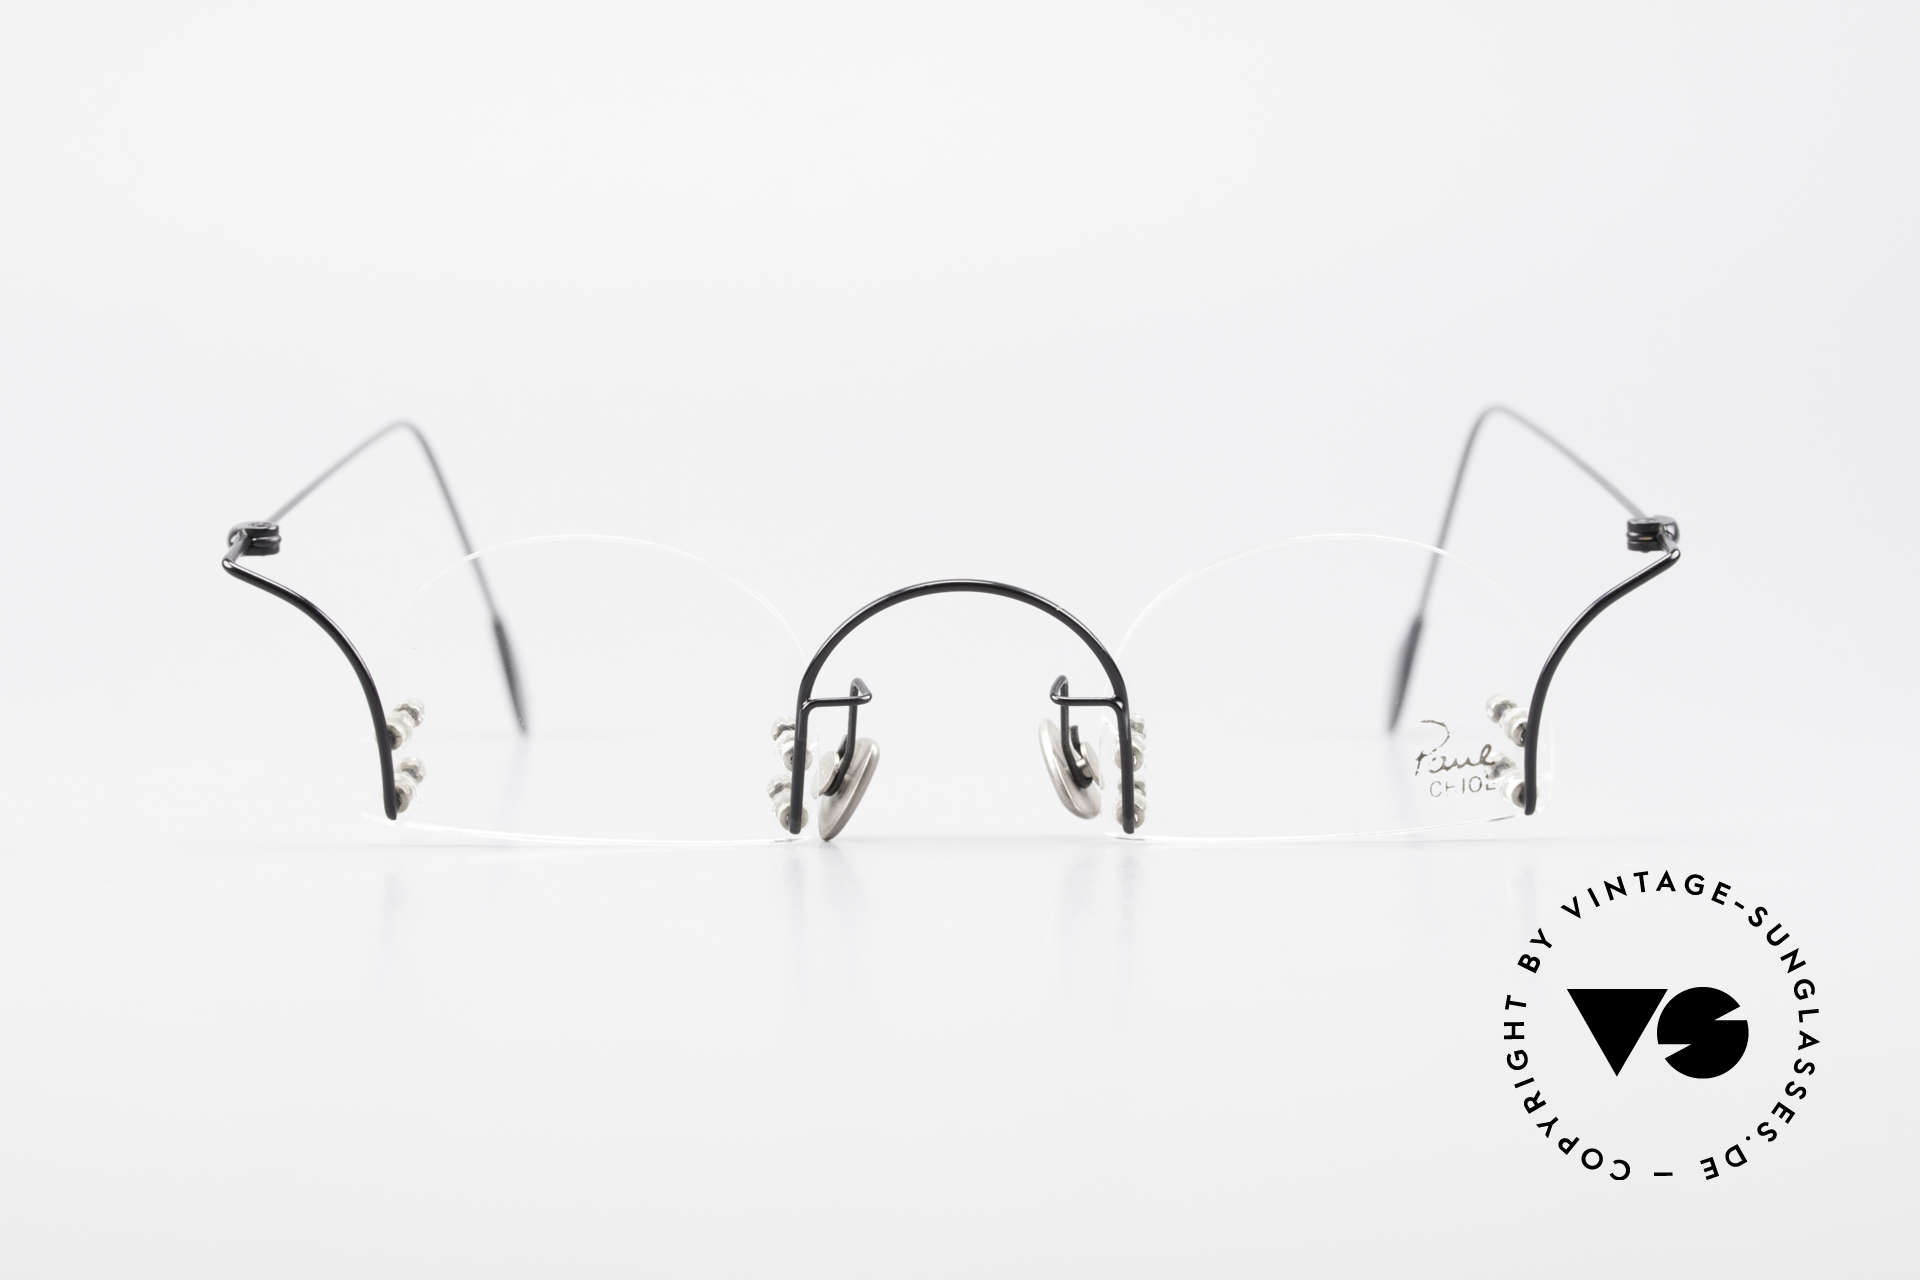 Paul Chiol 2000 Unique Rimless Eyeglasses, a synonym for sophisticated rimless spectacles, Made for Men and Women